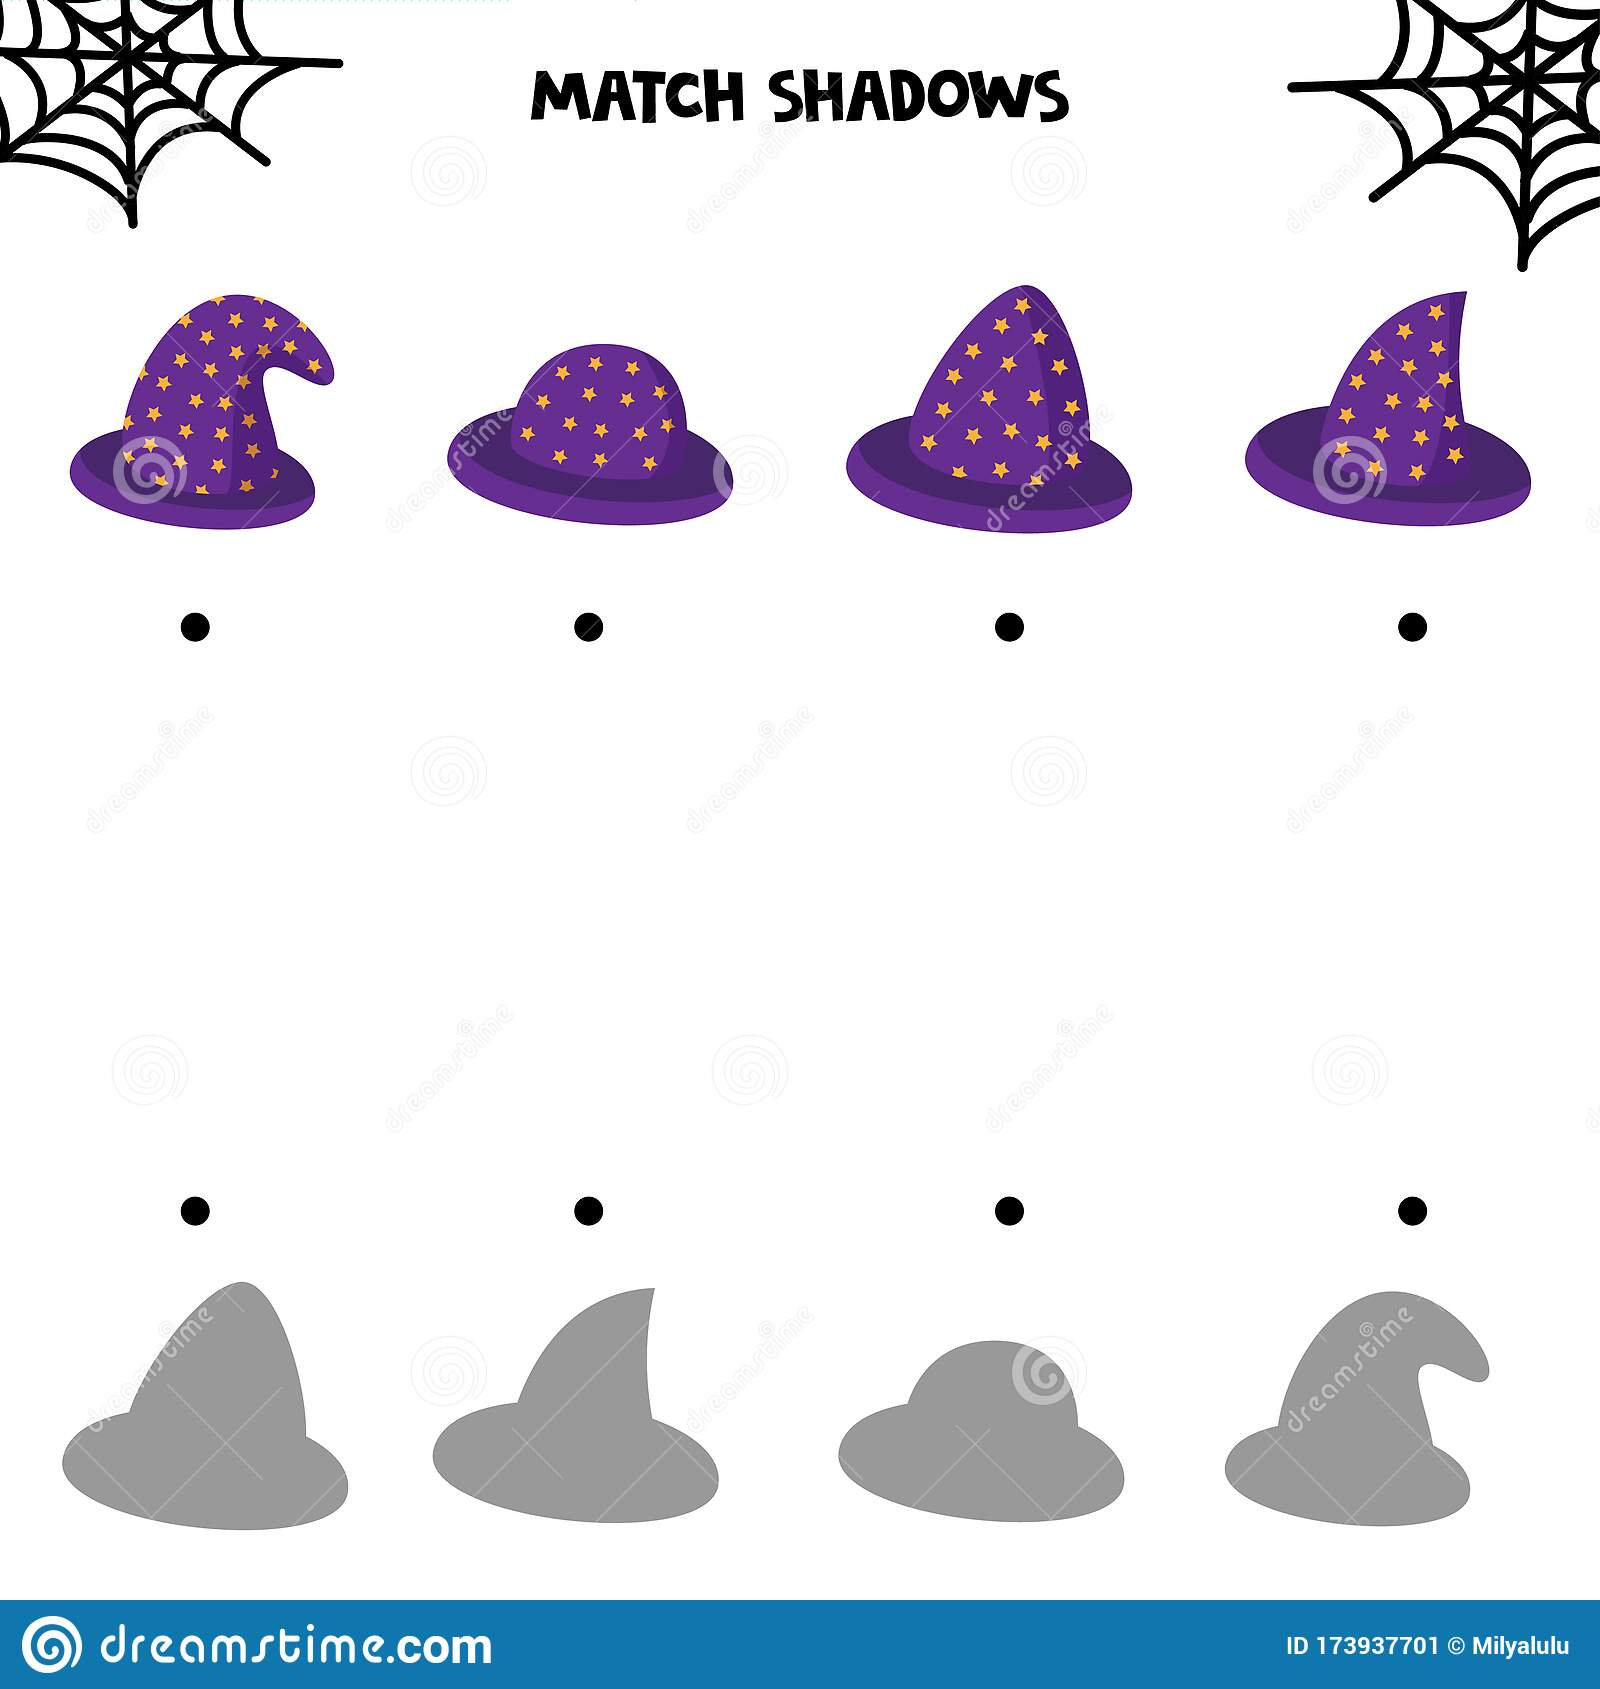 Educational Worksheet For Kids Halloween Games Match